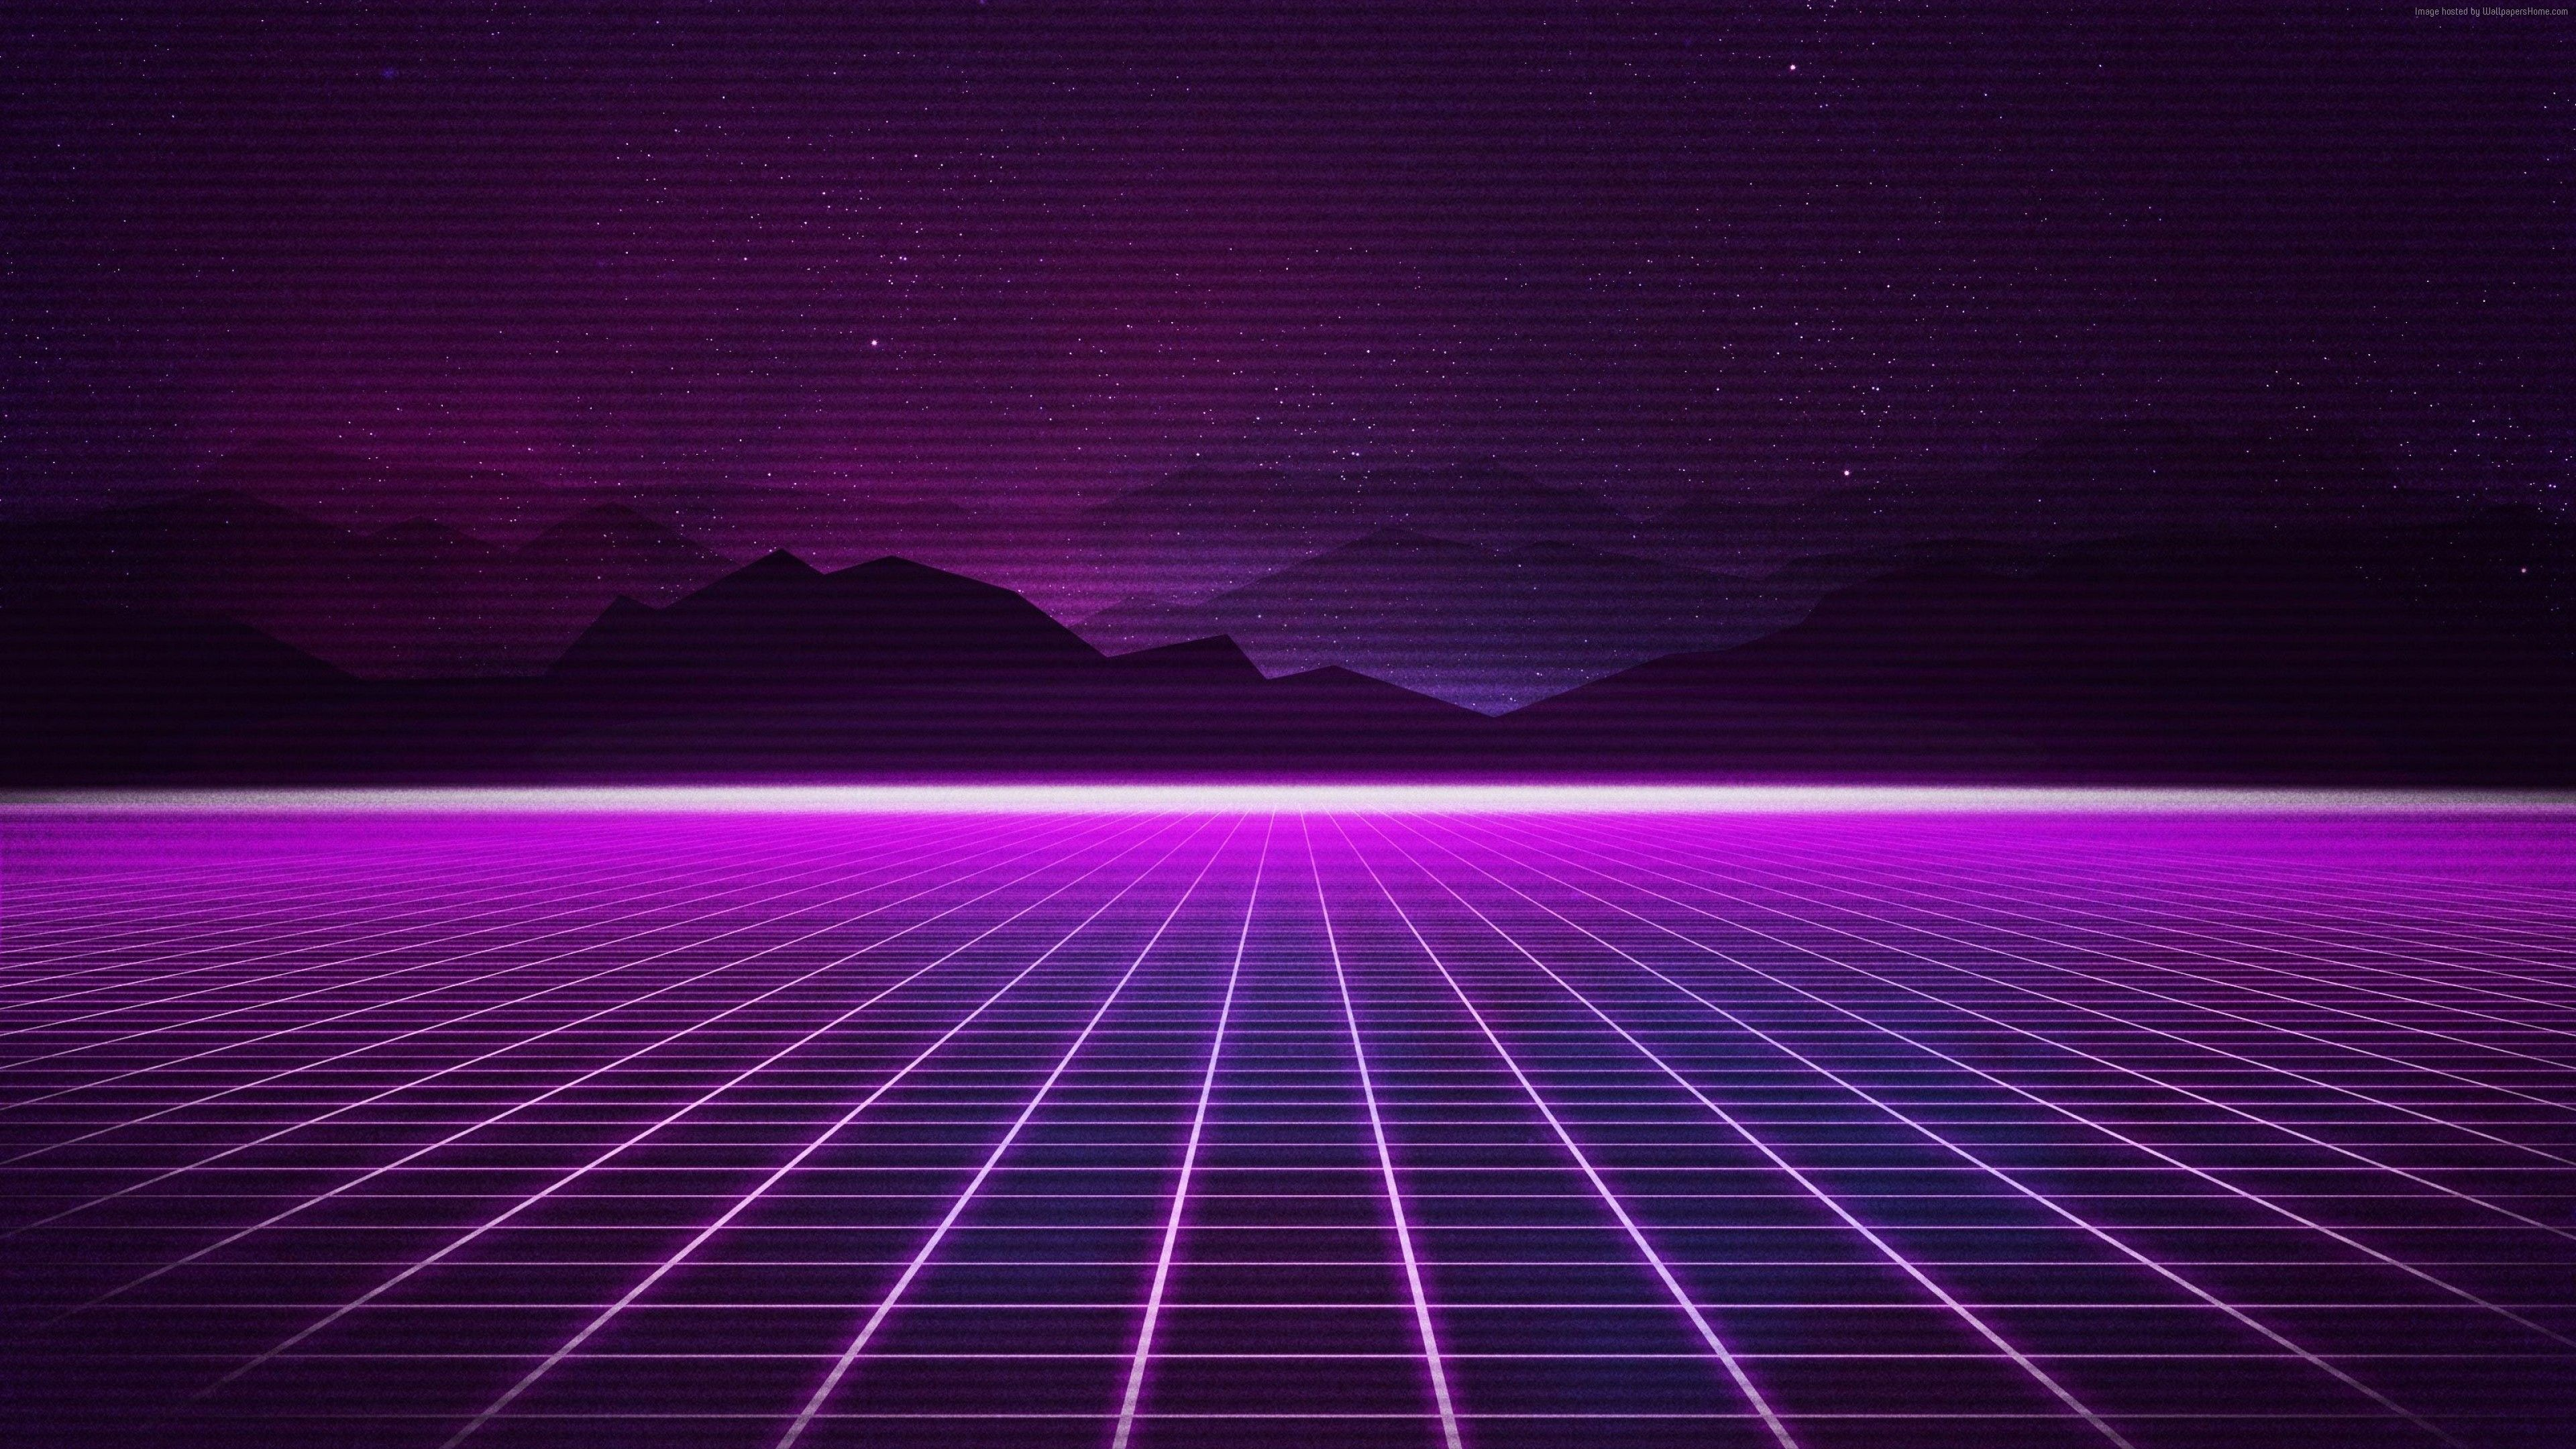 Wallpaper Retrowave Purple Lines 4k Art Https Www Pxwall Com Wallpaper Retrowave Purple Lines 4k Art Vaporwave Wallpaper Wallpaper Pc Retro Waves